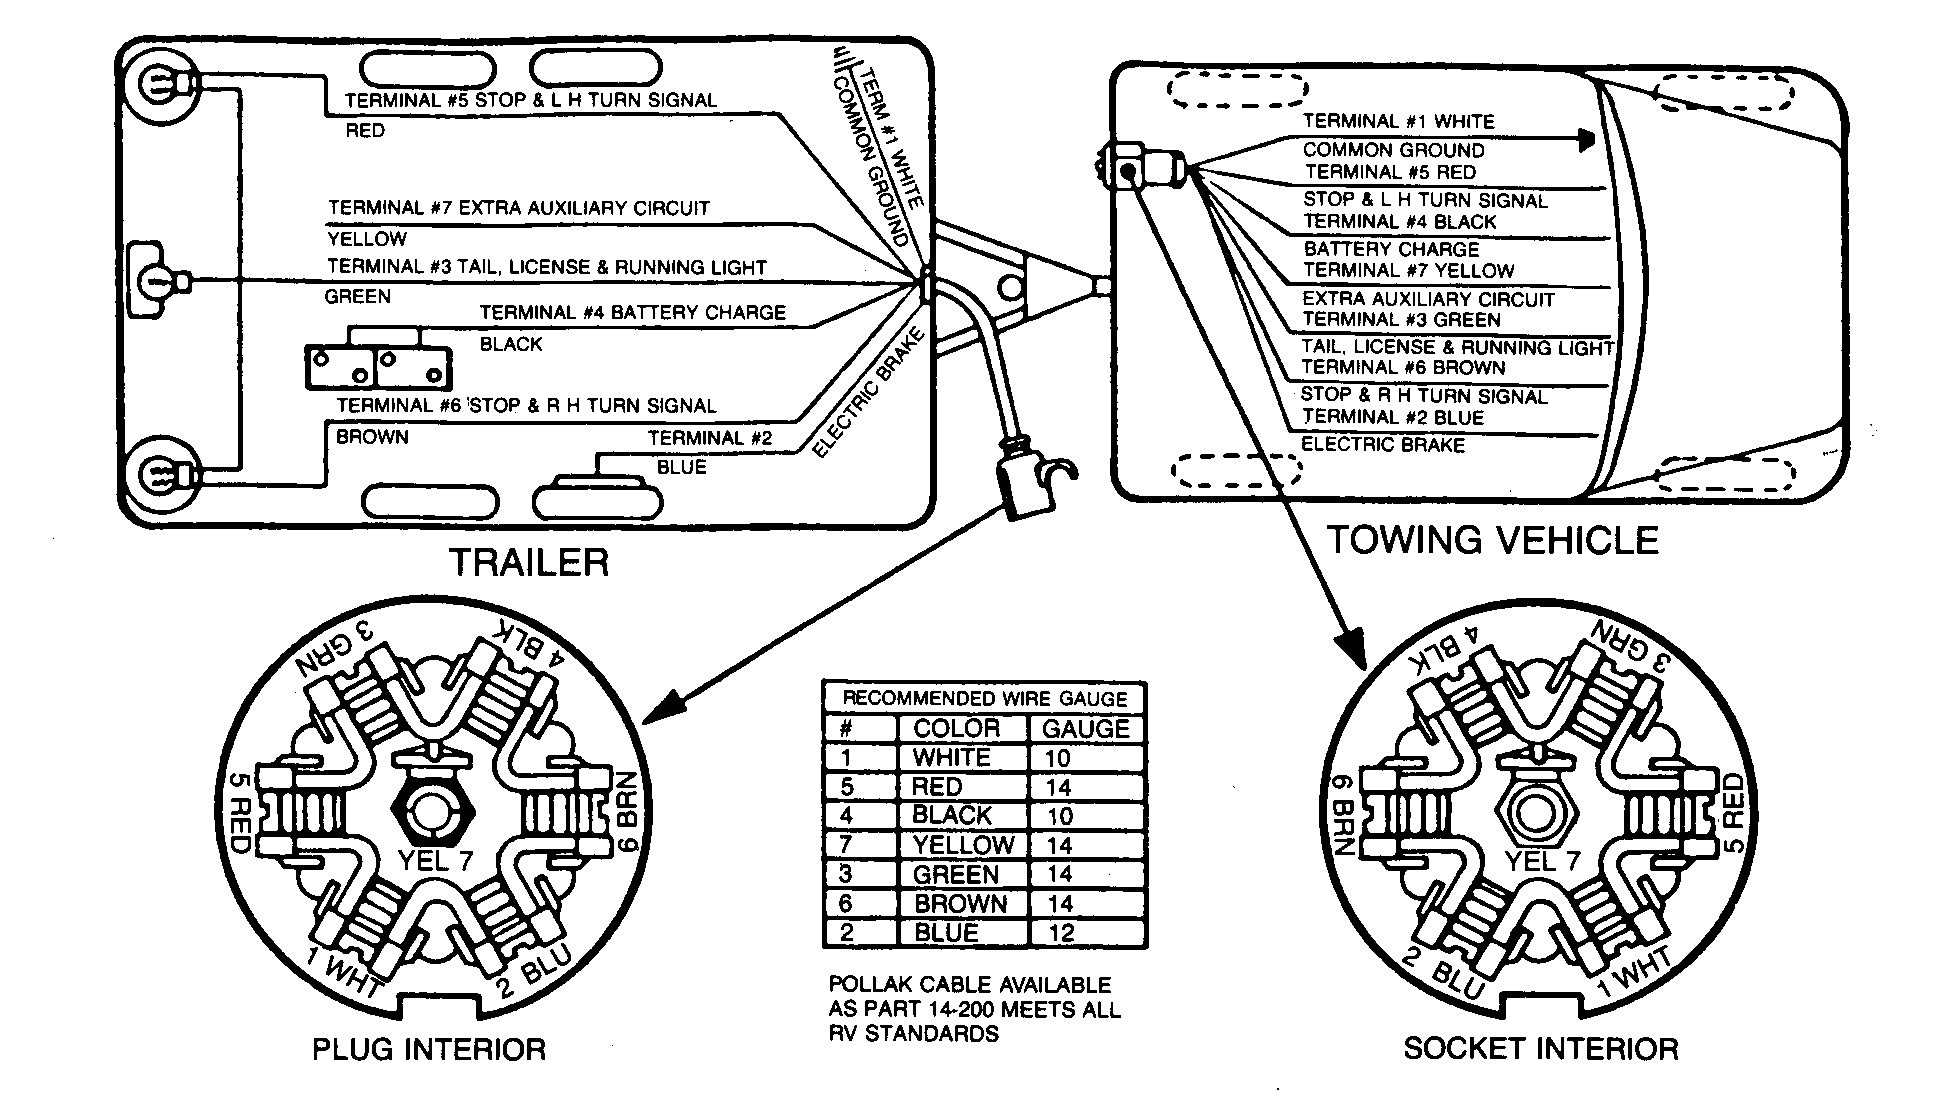 7 Round Wiring Diagram - Wiring Diagram Gp on 7 round trailer wire, 7-way plug diagram, 7 pin trailer diagram, 7 pronge trailer connector diagram, 7 round wiring harness,